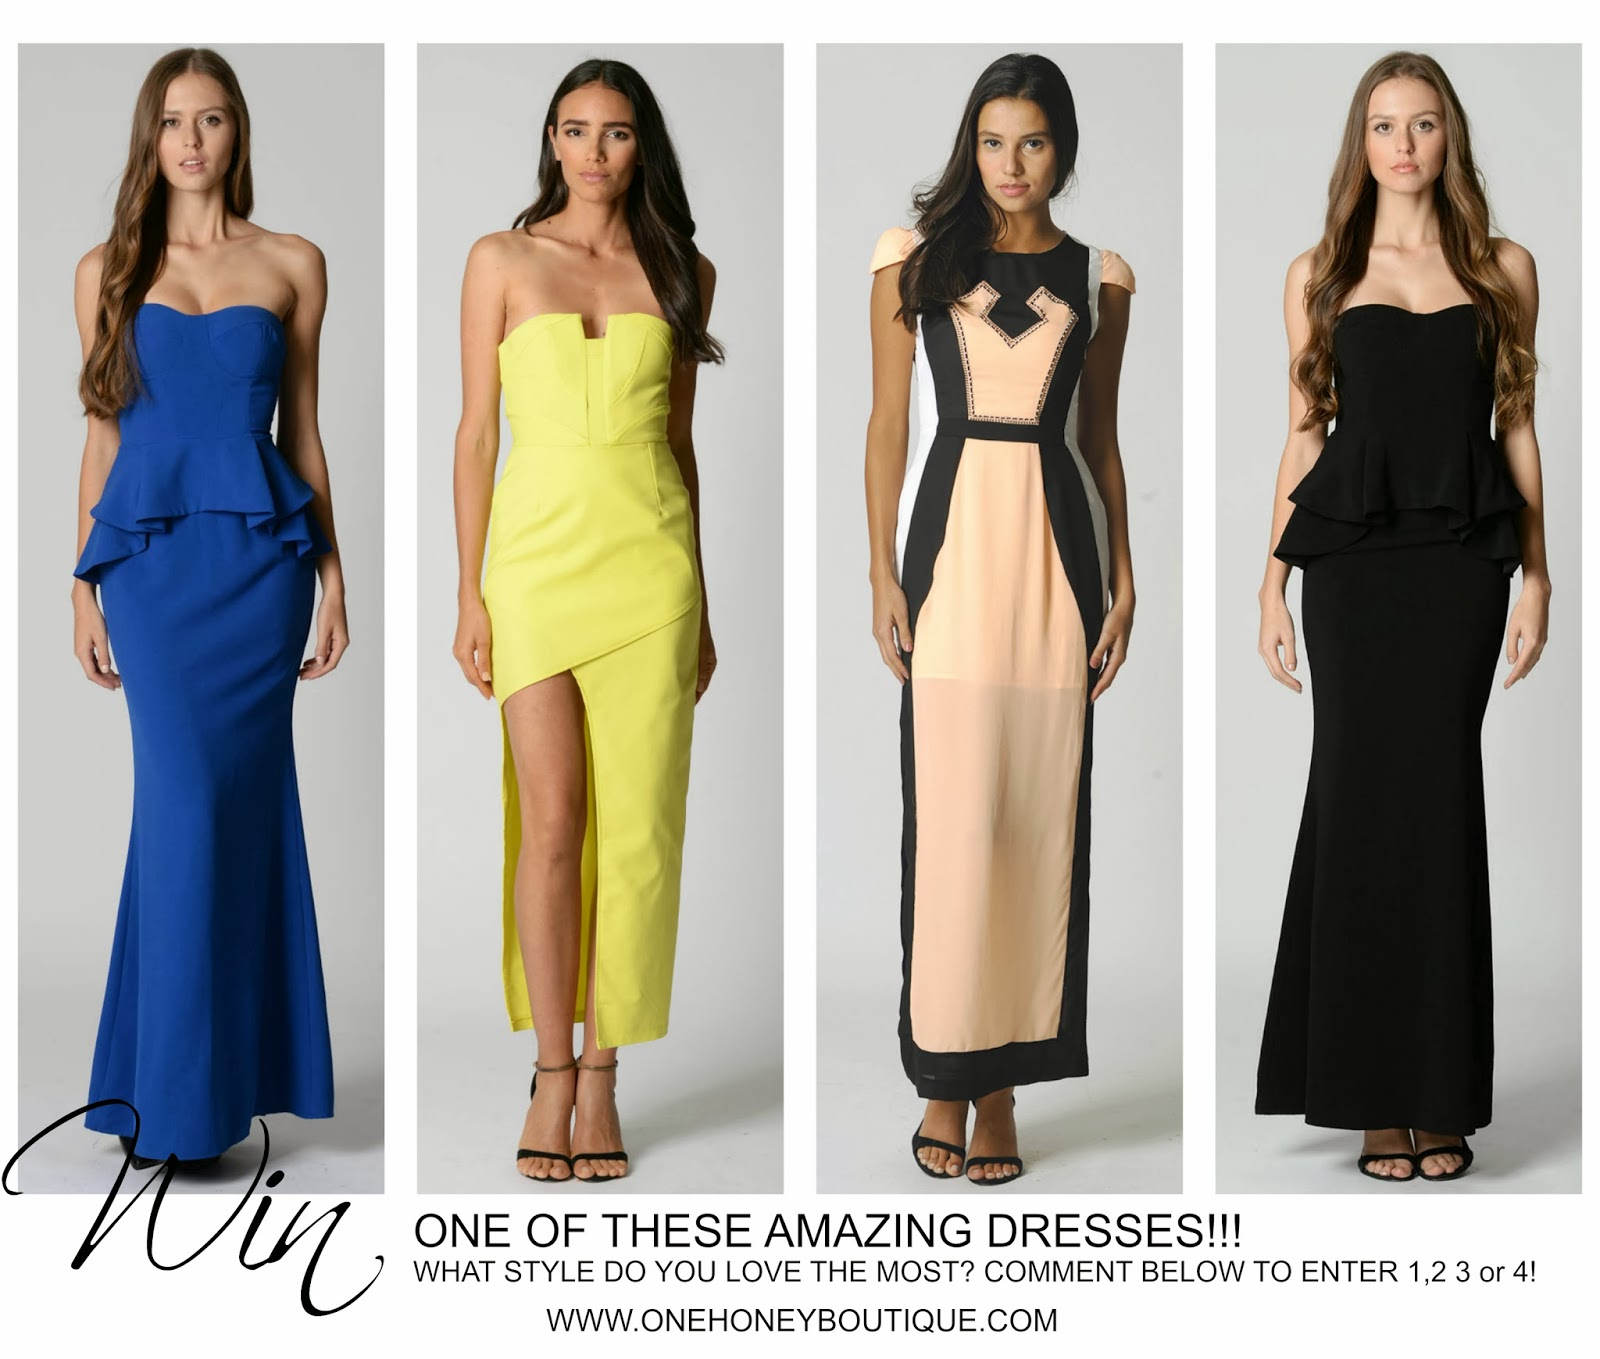 Enter & WIN a Maxi Dress from One Honey Boutique